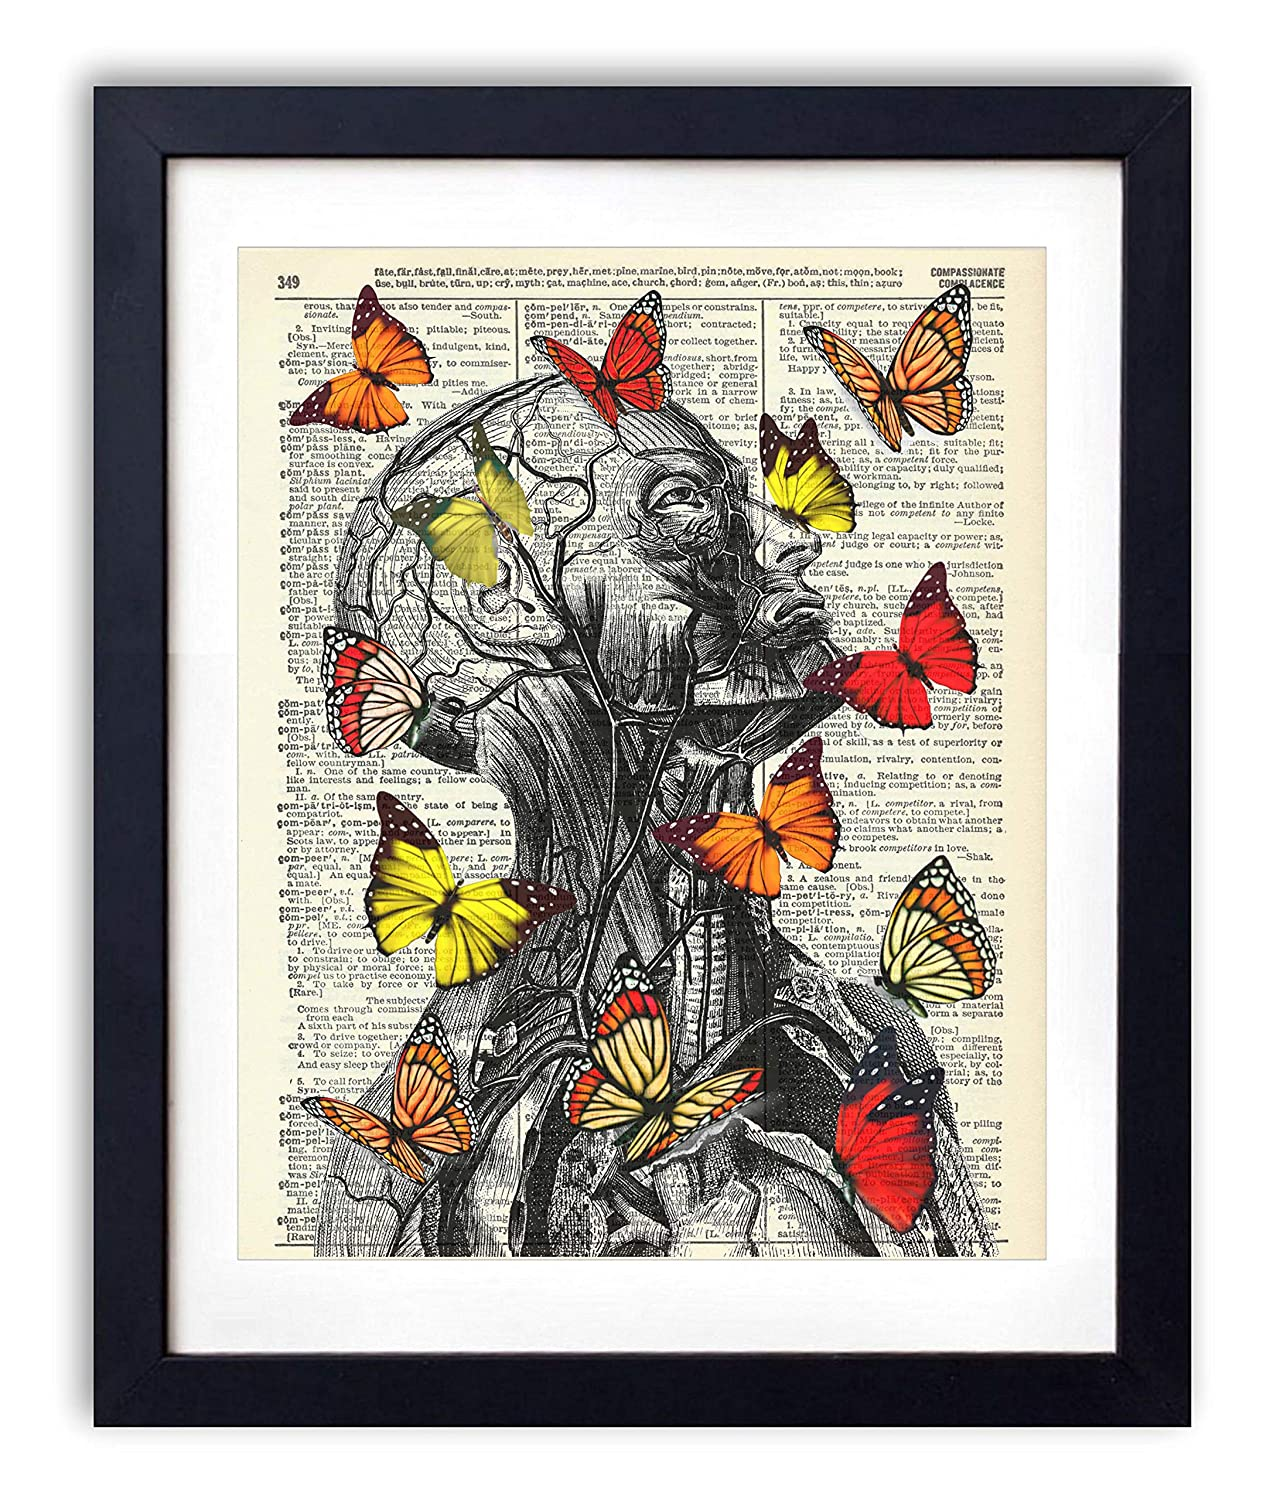 Human Anatomy With Red, Orange and Yellow Butterflies, Upcycled Vintage Dictionary Art Print, Living Room, Bathroom and Home Decor 8x10 Inches, Unframed